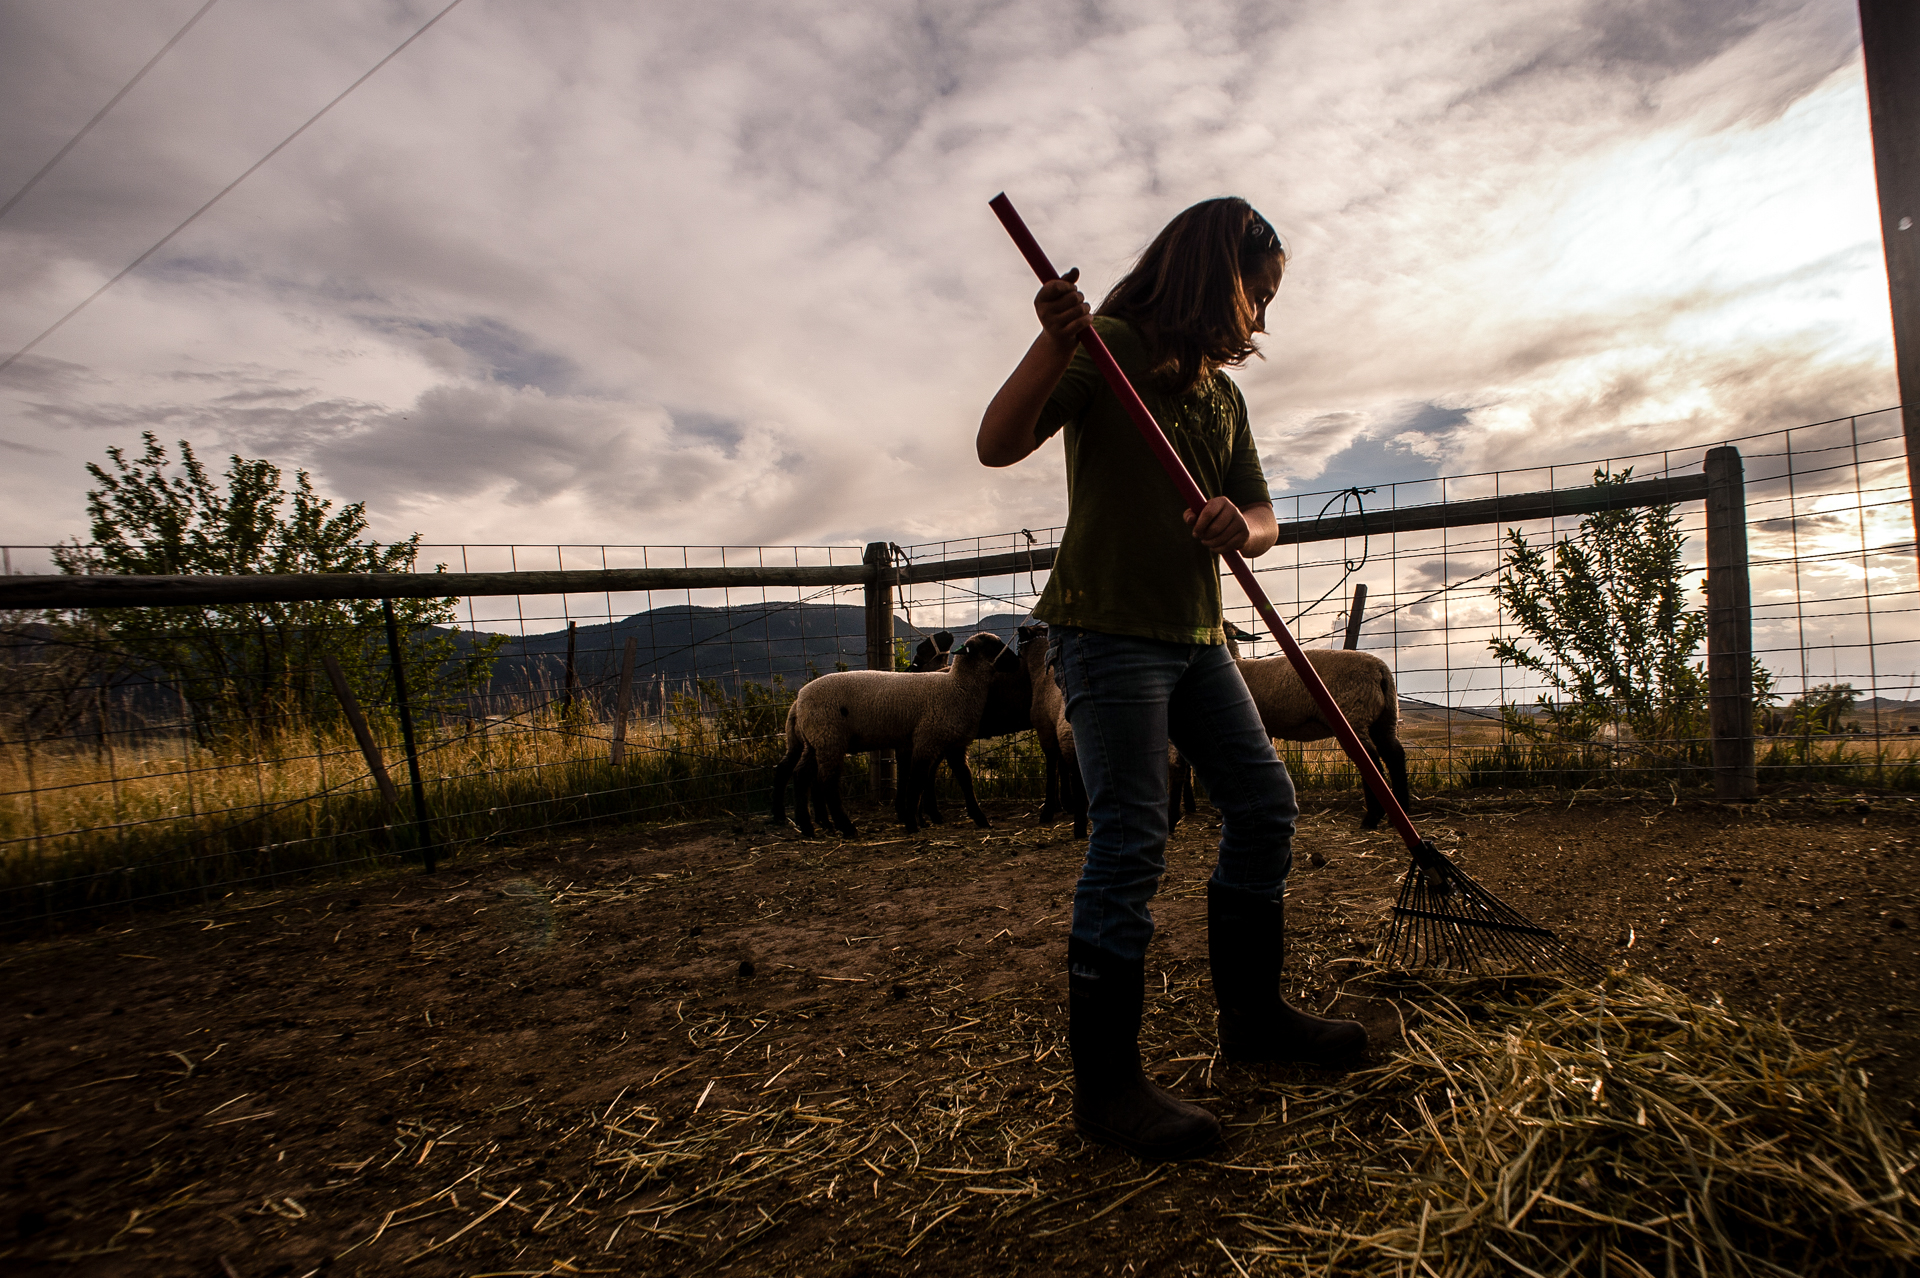 Kodie Booth, a fourth-grader from Livingston, Mont., does evening chores at her families small farm. The entire family is active in the Montana 4-H program where Kodie and her 13-year-old brother Dalton raise sheep for their projects.